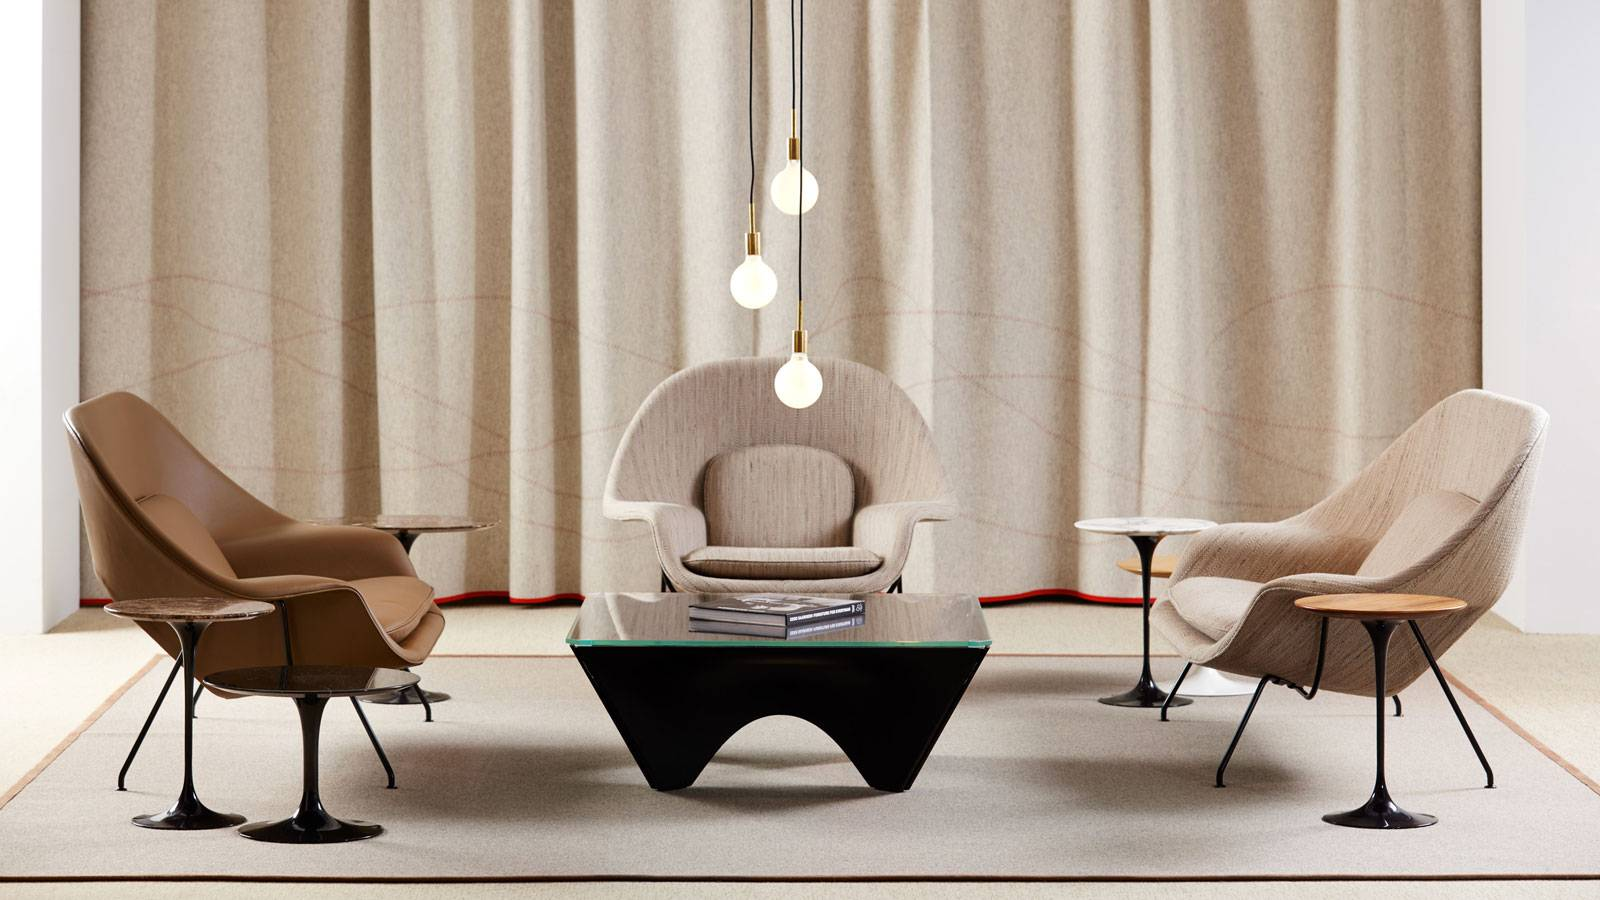 contemporary design furniture by Eero Saarinen for Knoll